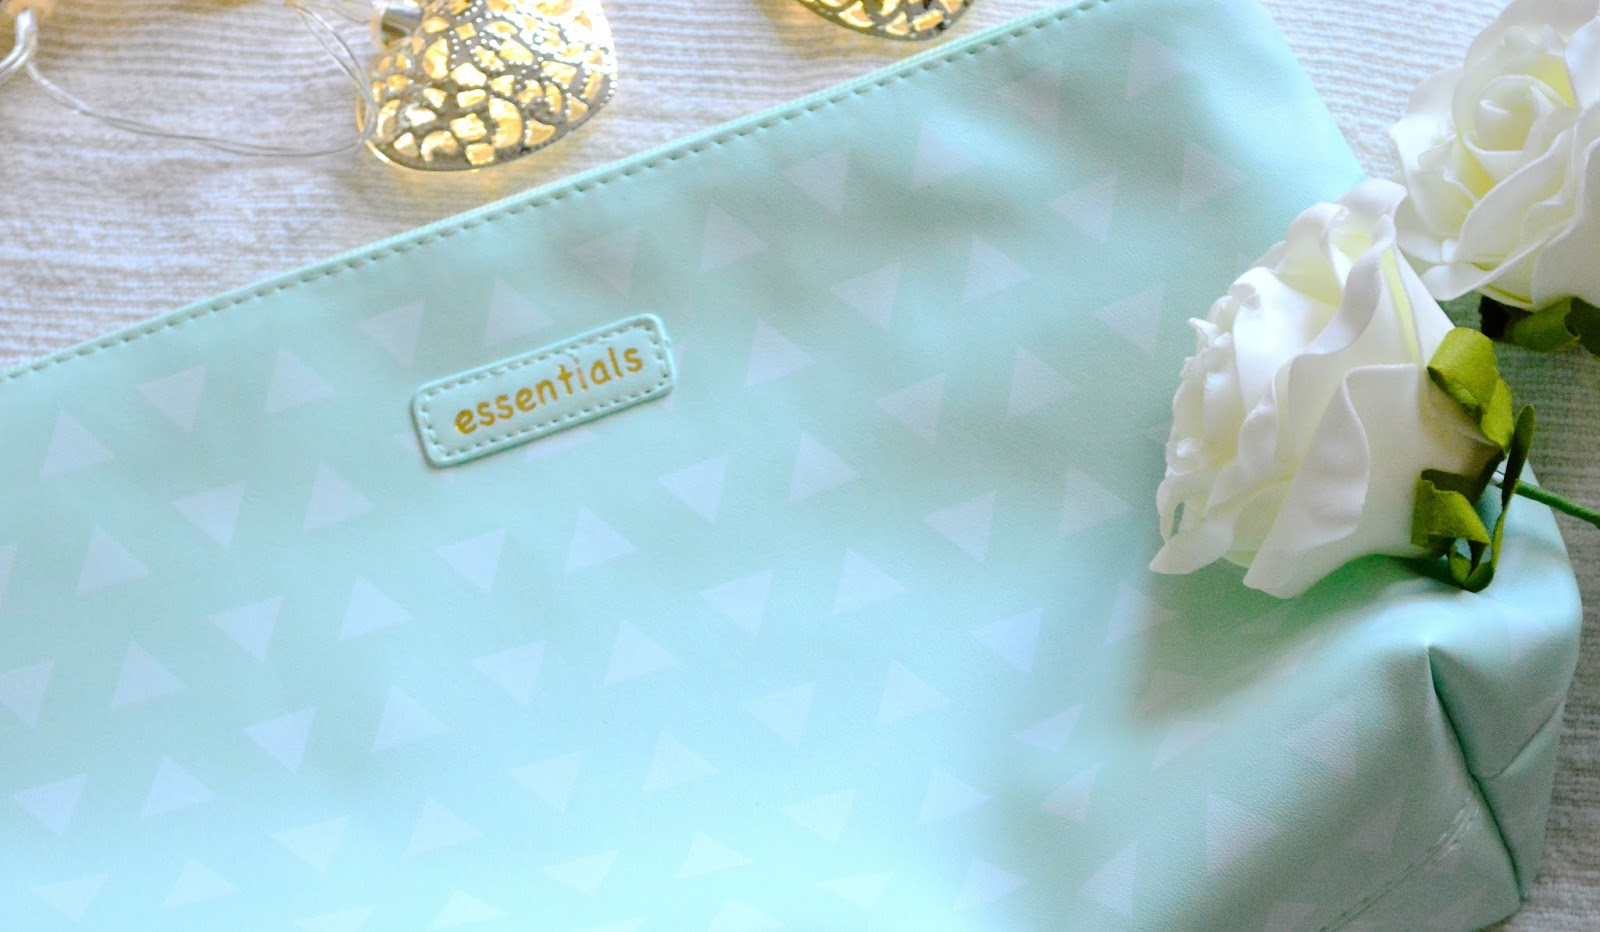 Primark Haul, Primark Essentials Washbag, Beauty Bag, Pastel Wash Bag